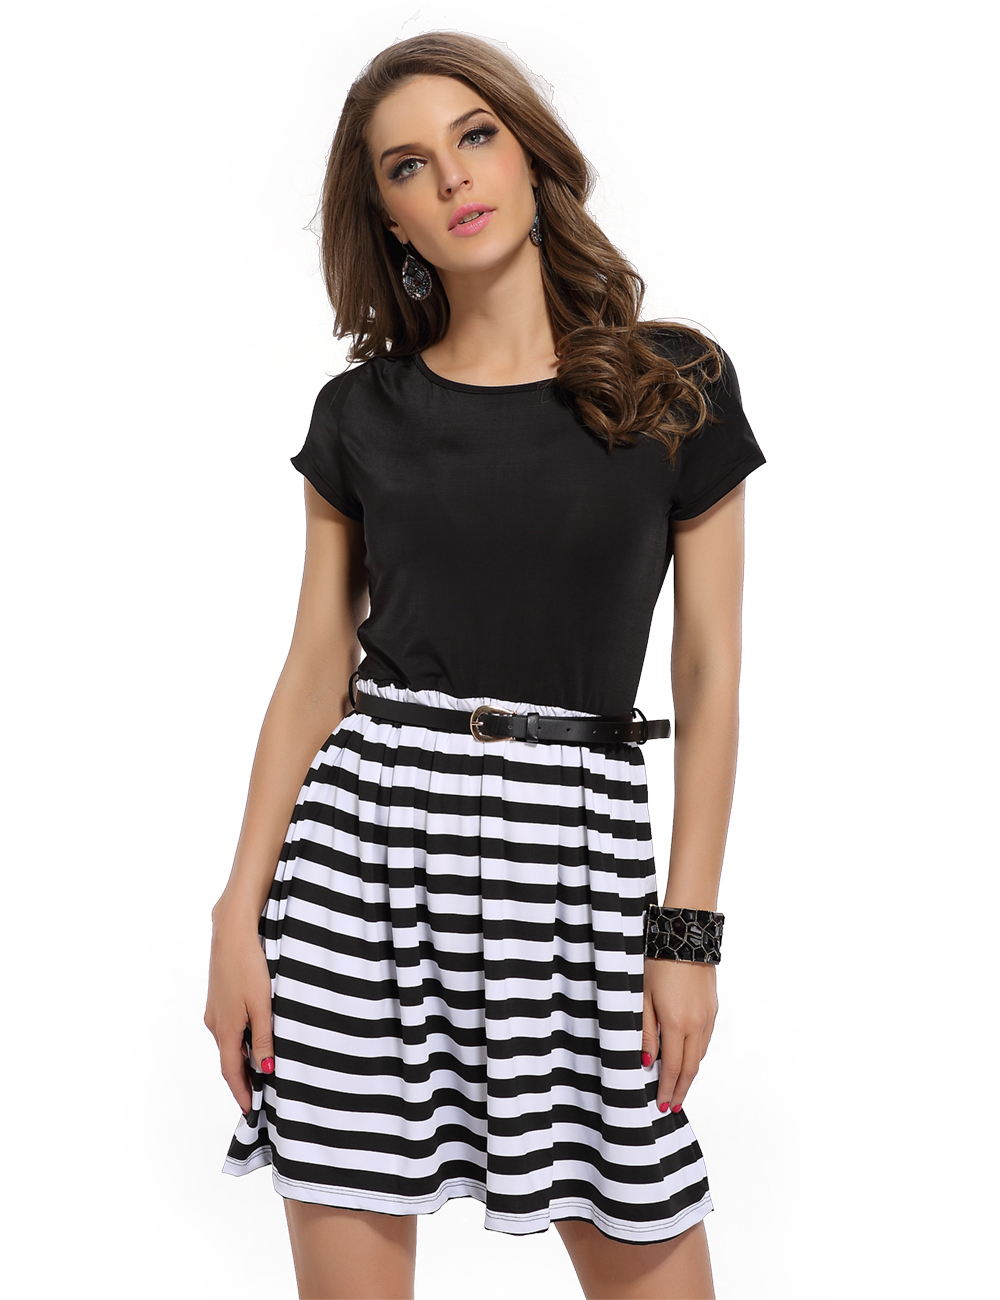 2015 New Summer Style Black and White Striped Casual Dress A-line Short  Sleeve Mini Dresses With Belt d19cff190